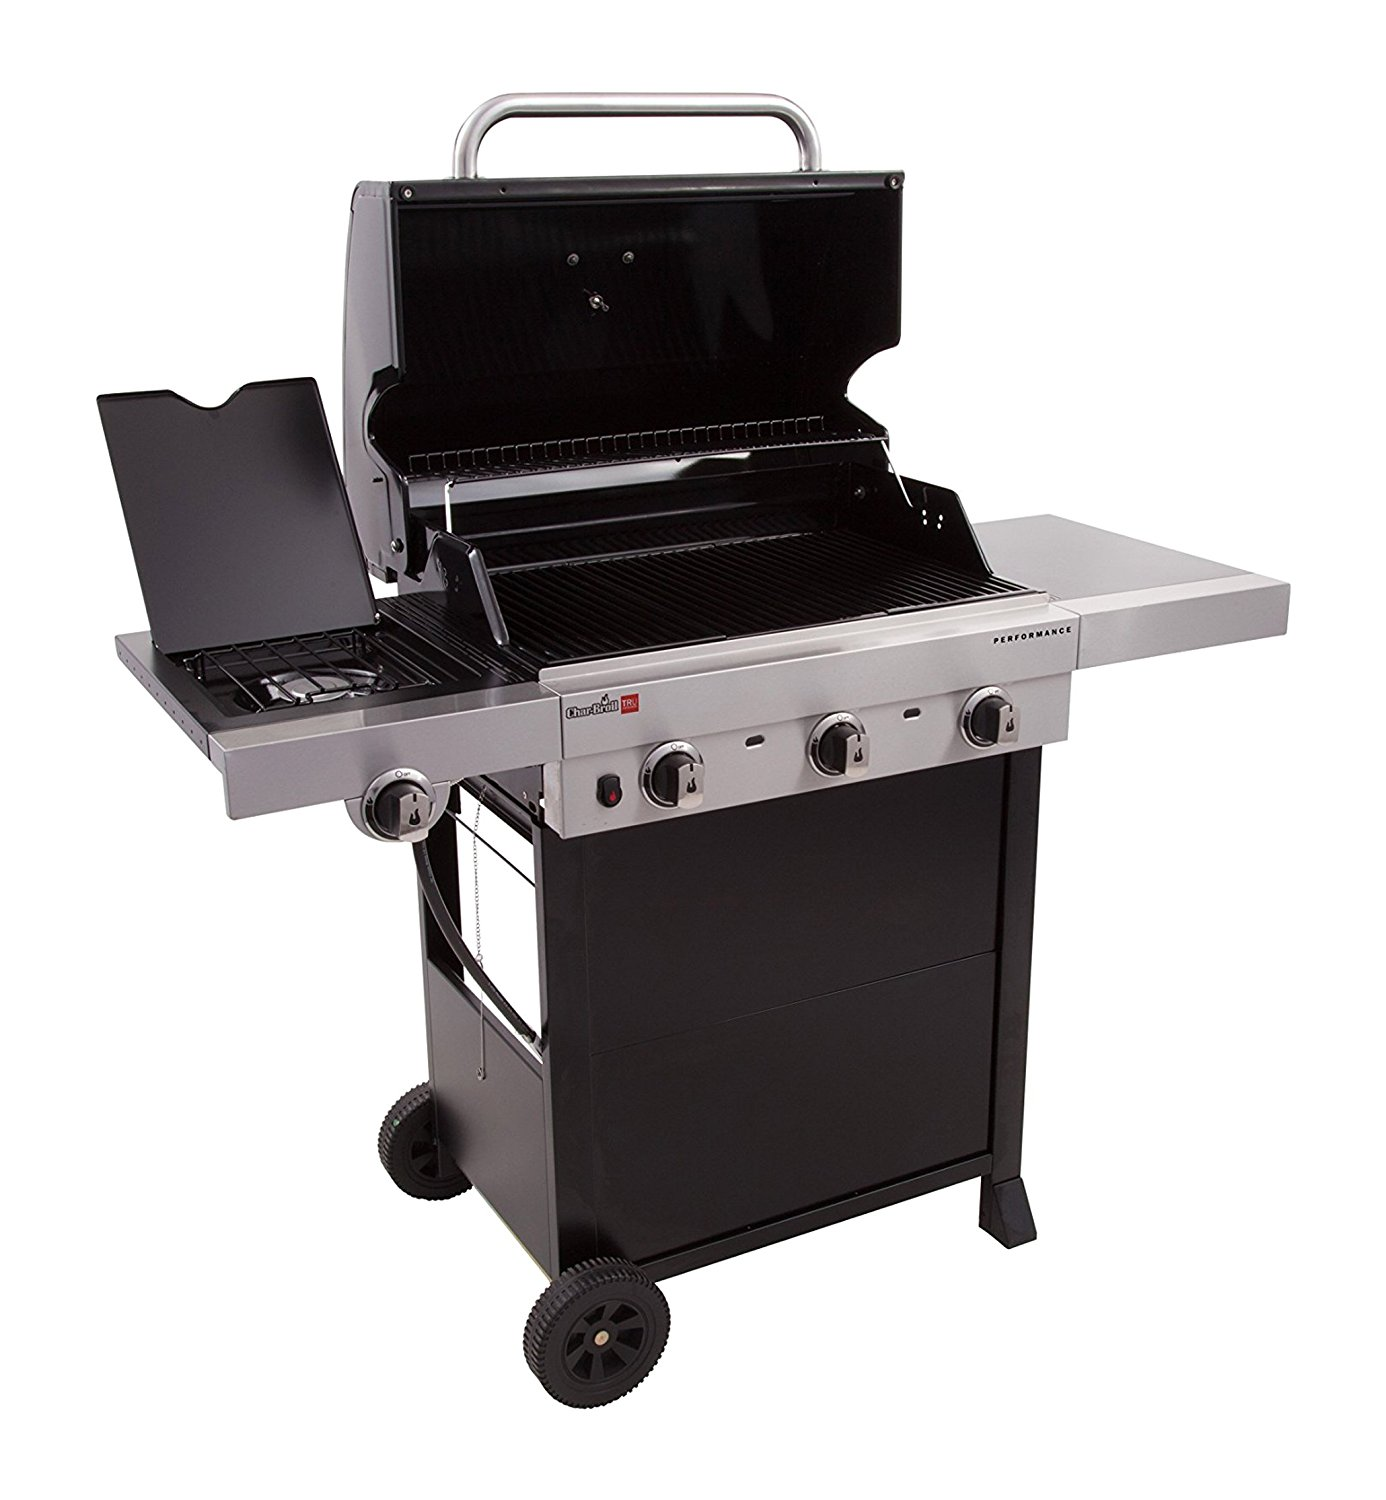 Char-Broil Performance TRU Infrared 450 3-Burner Cart Gas Grill For Only  $137.77 Shipped!